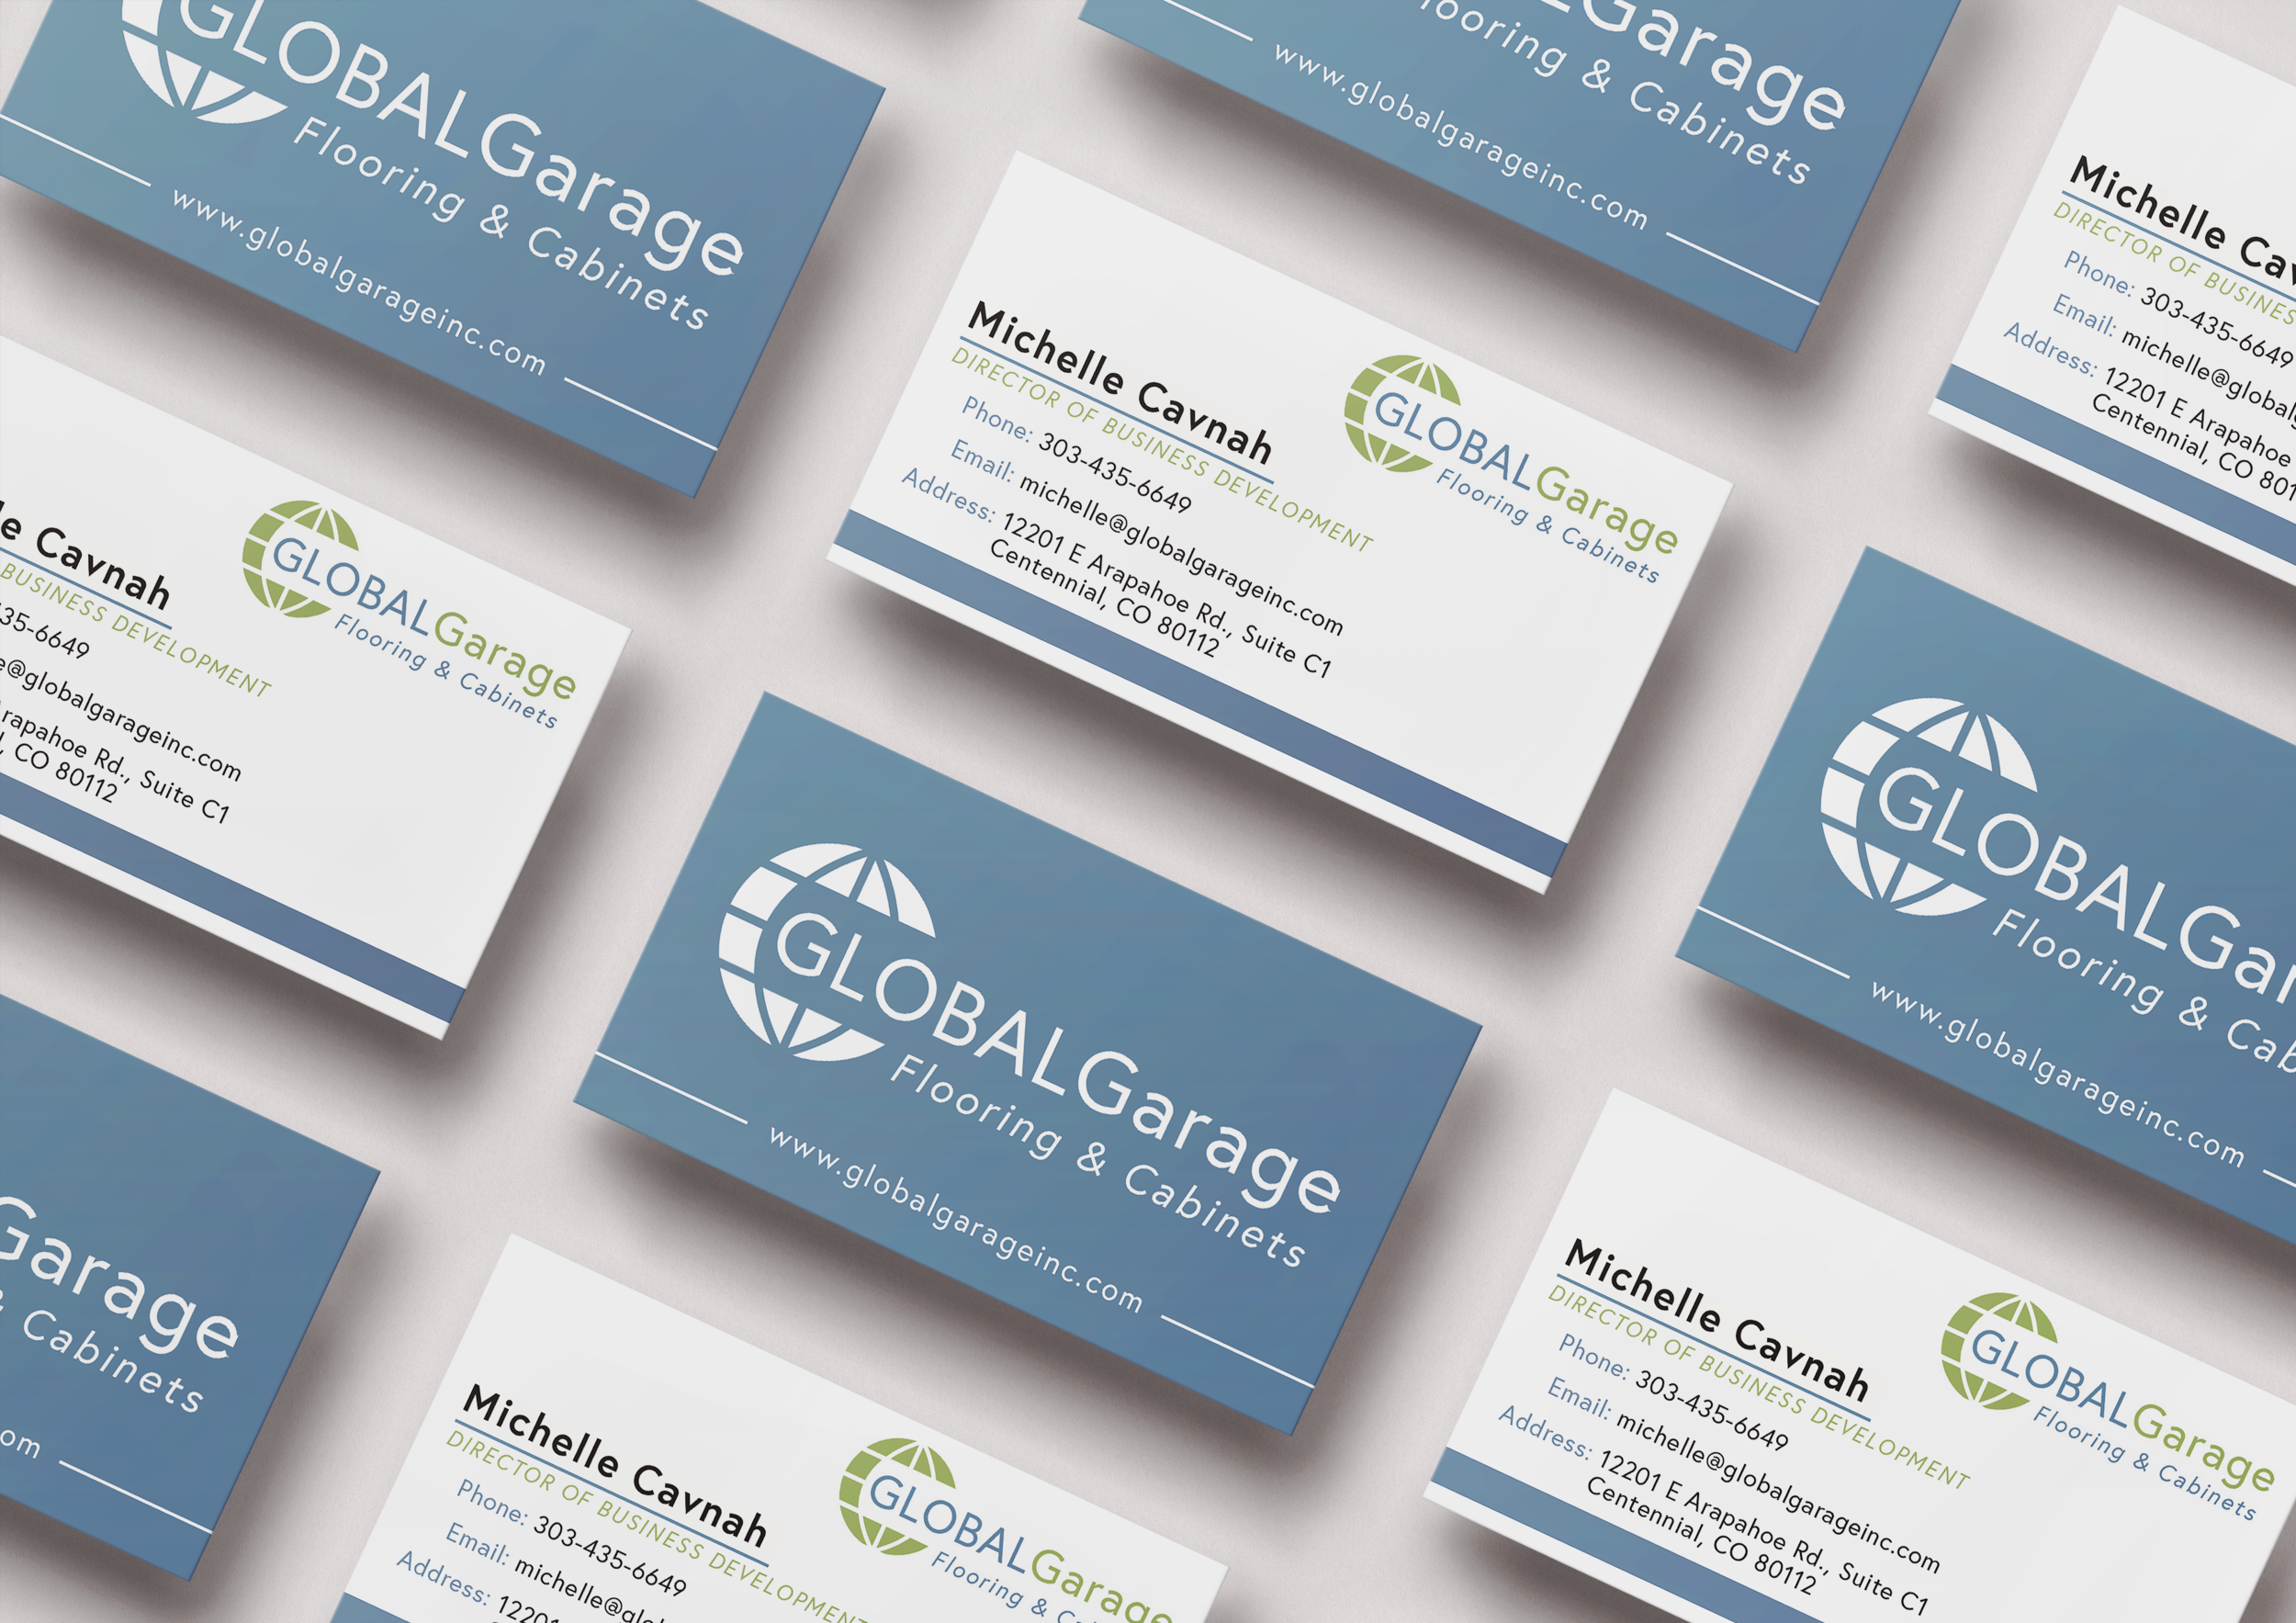 Global Garage Business Card Design